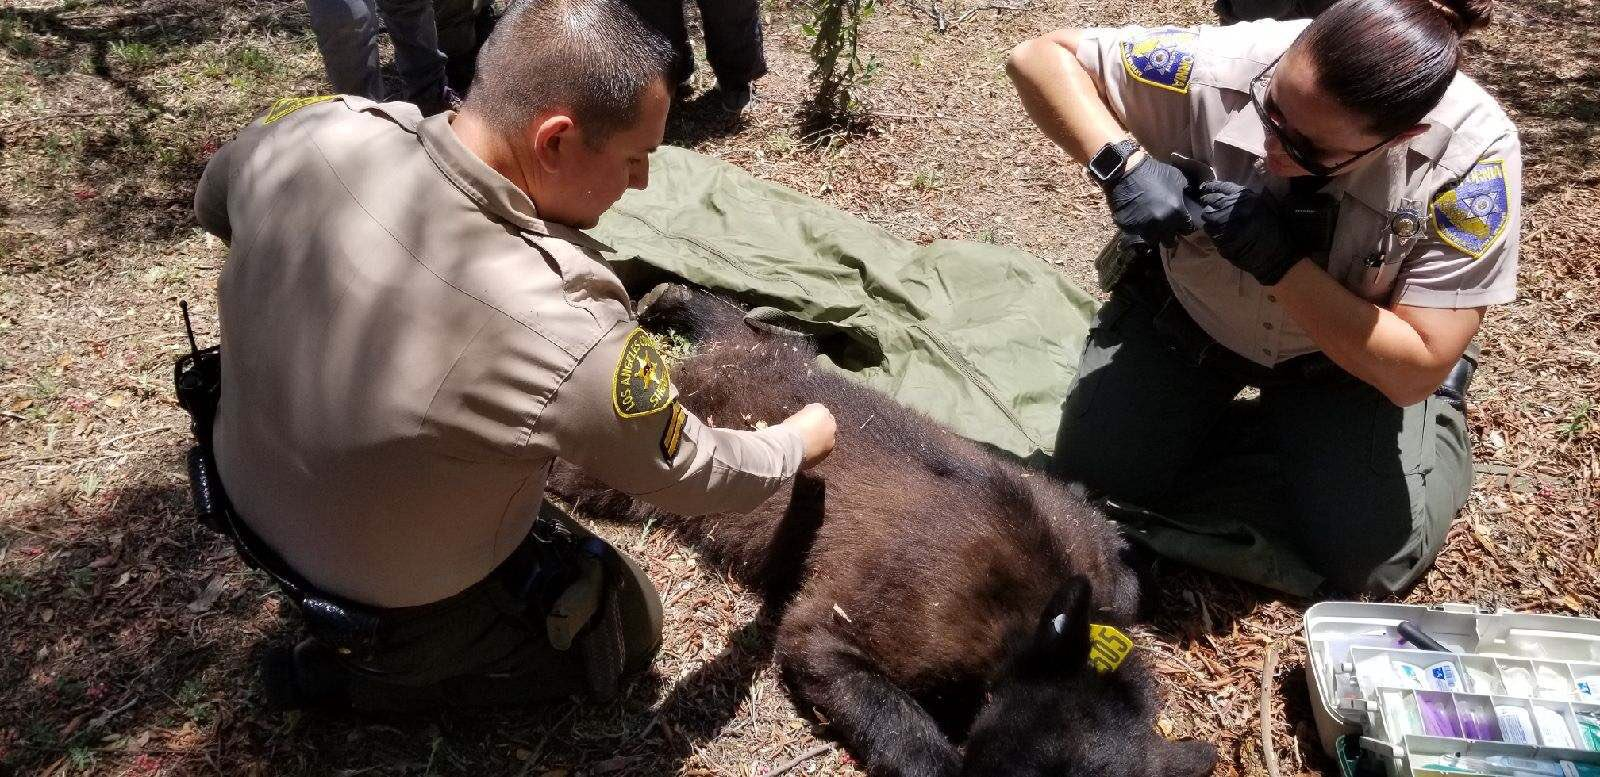 Scv News Pair Of Bears Visit Scv In Search Of Food Scvnews Com